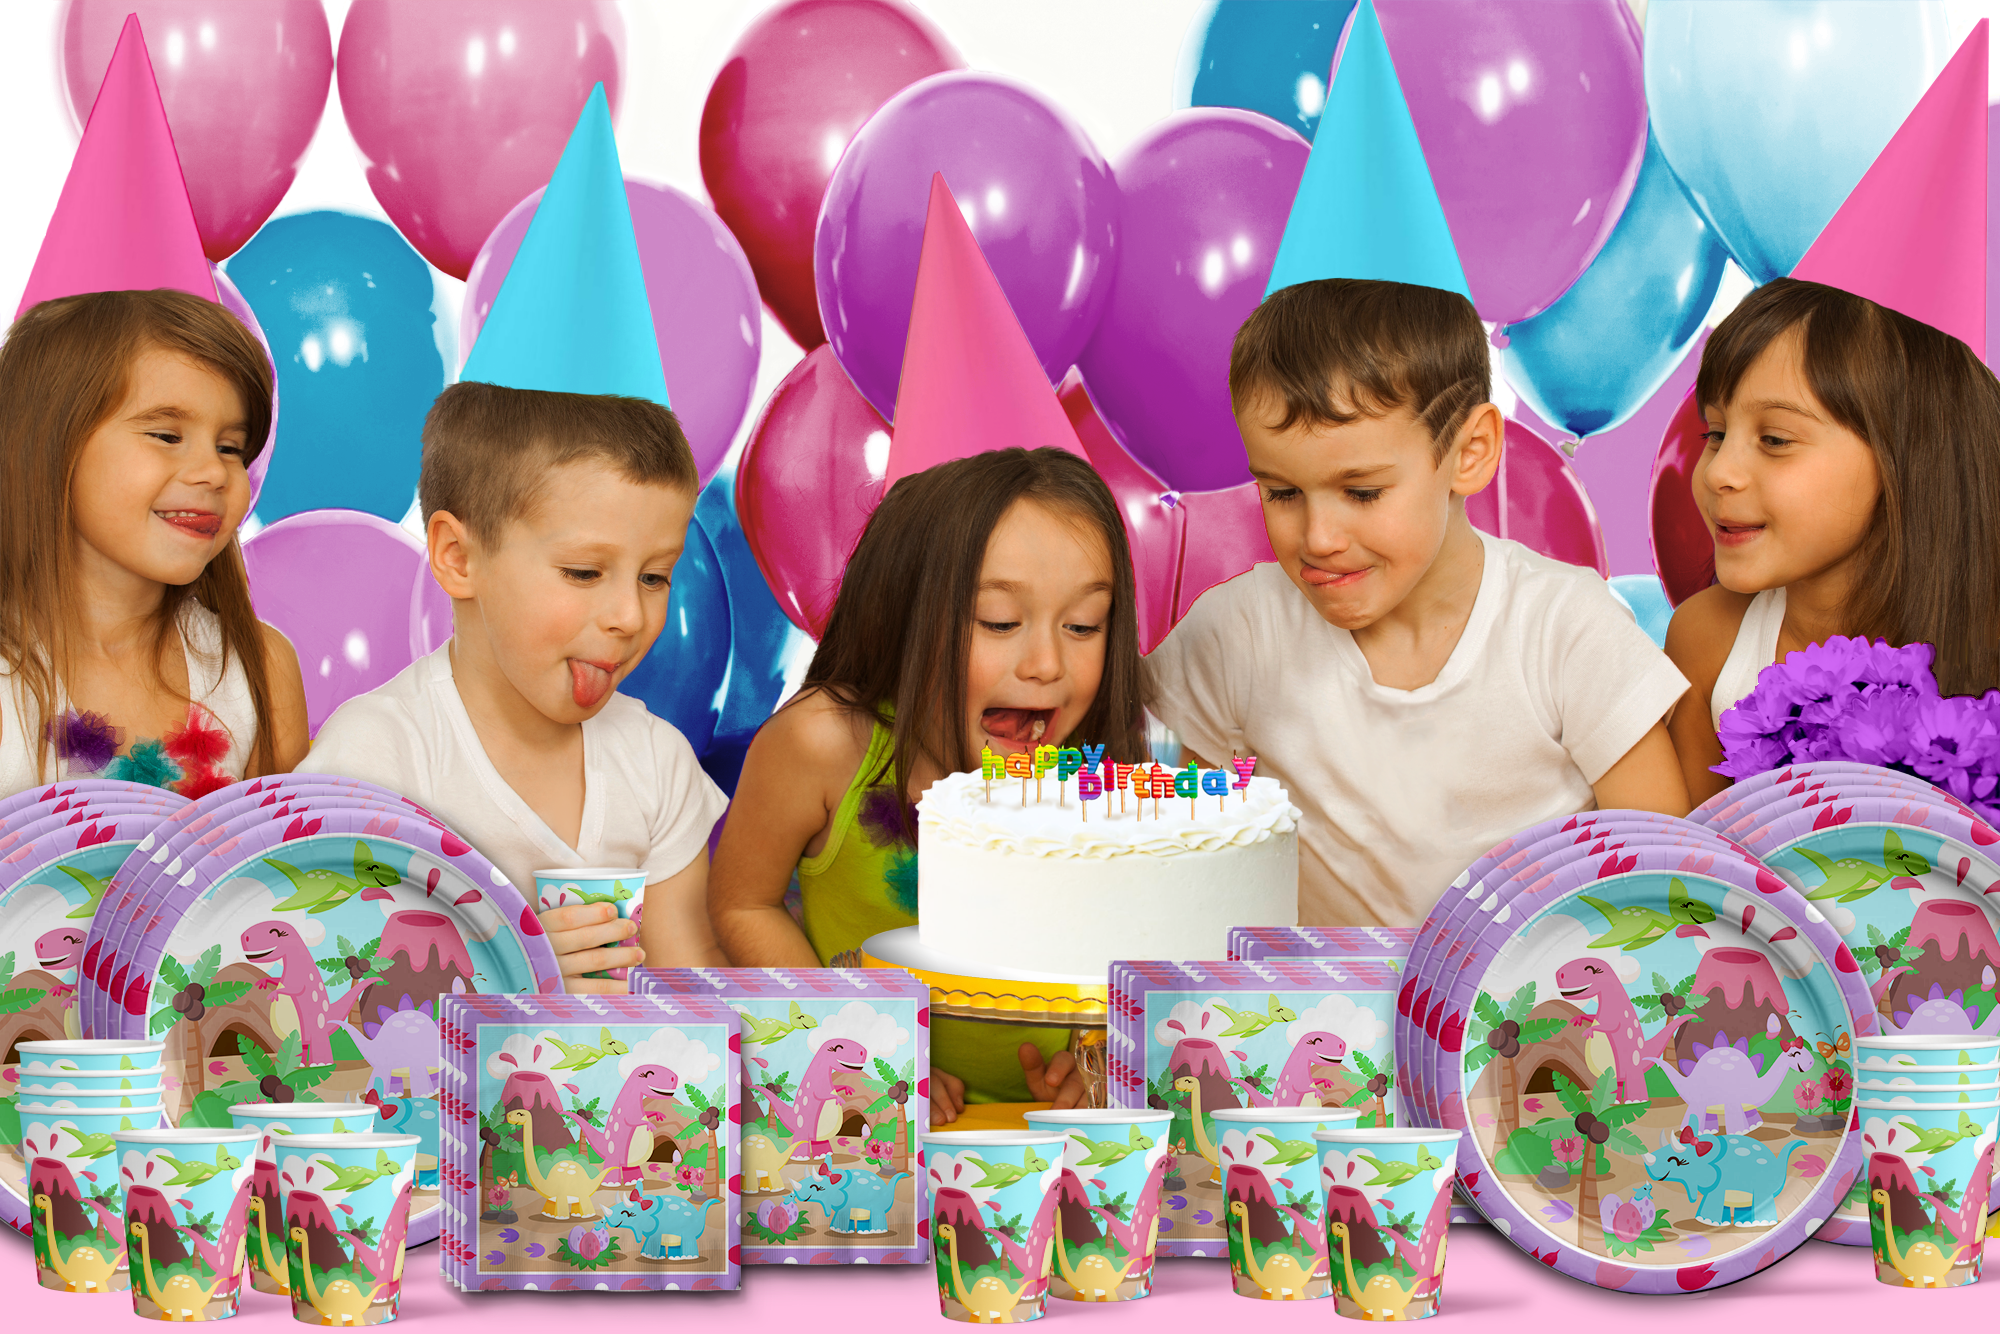 Girl Little Dino Pink Dinosaur Birthday Party Tableware Kit For 16 Guests - BirthdayGalore.com